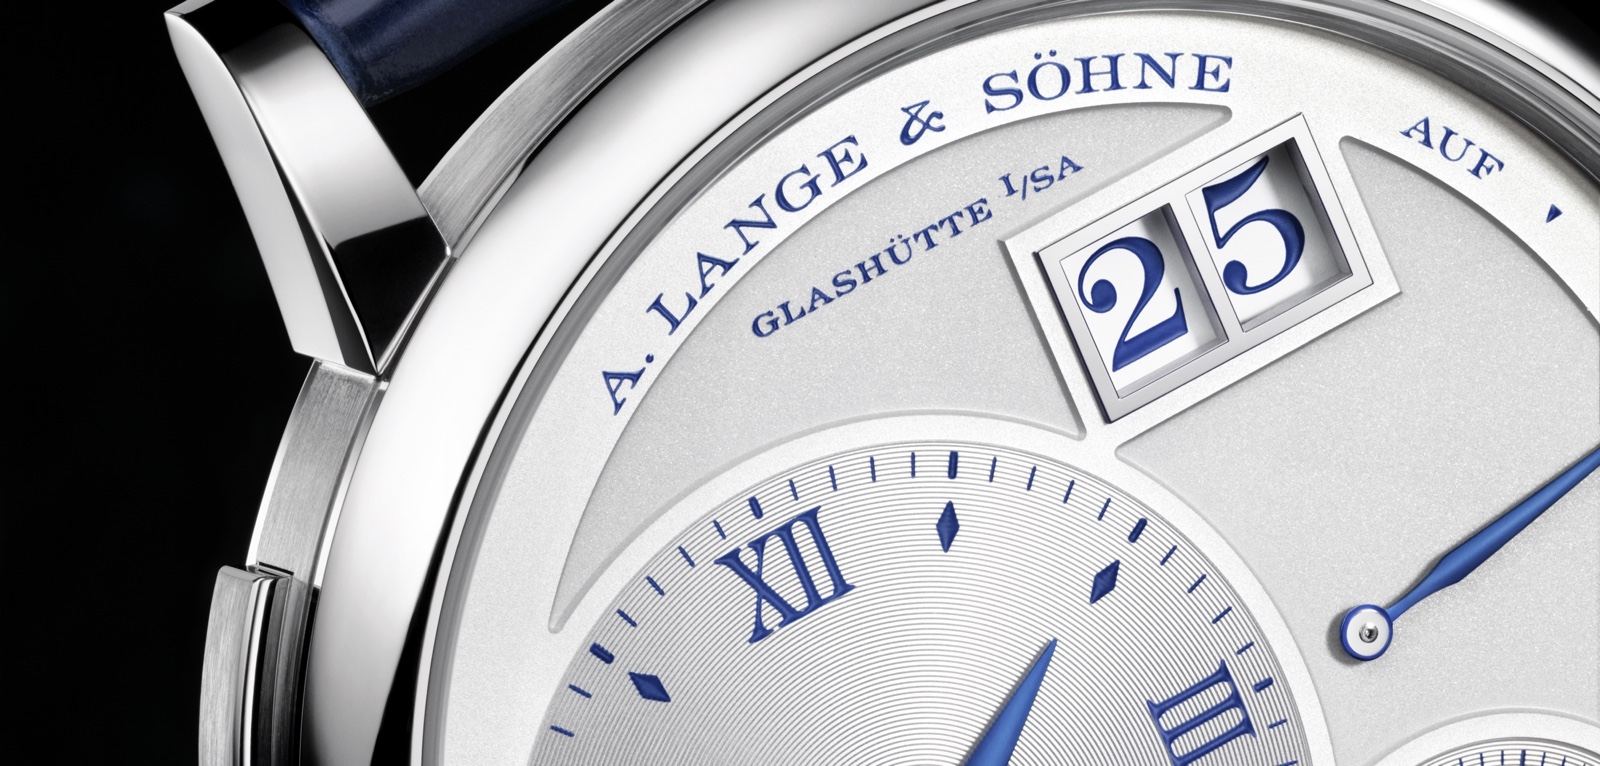 Grand Lange 1 25th Anniversary Cover